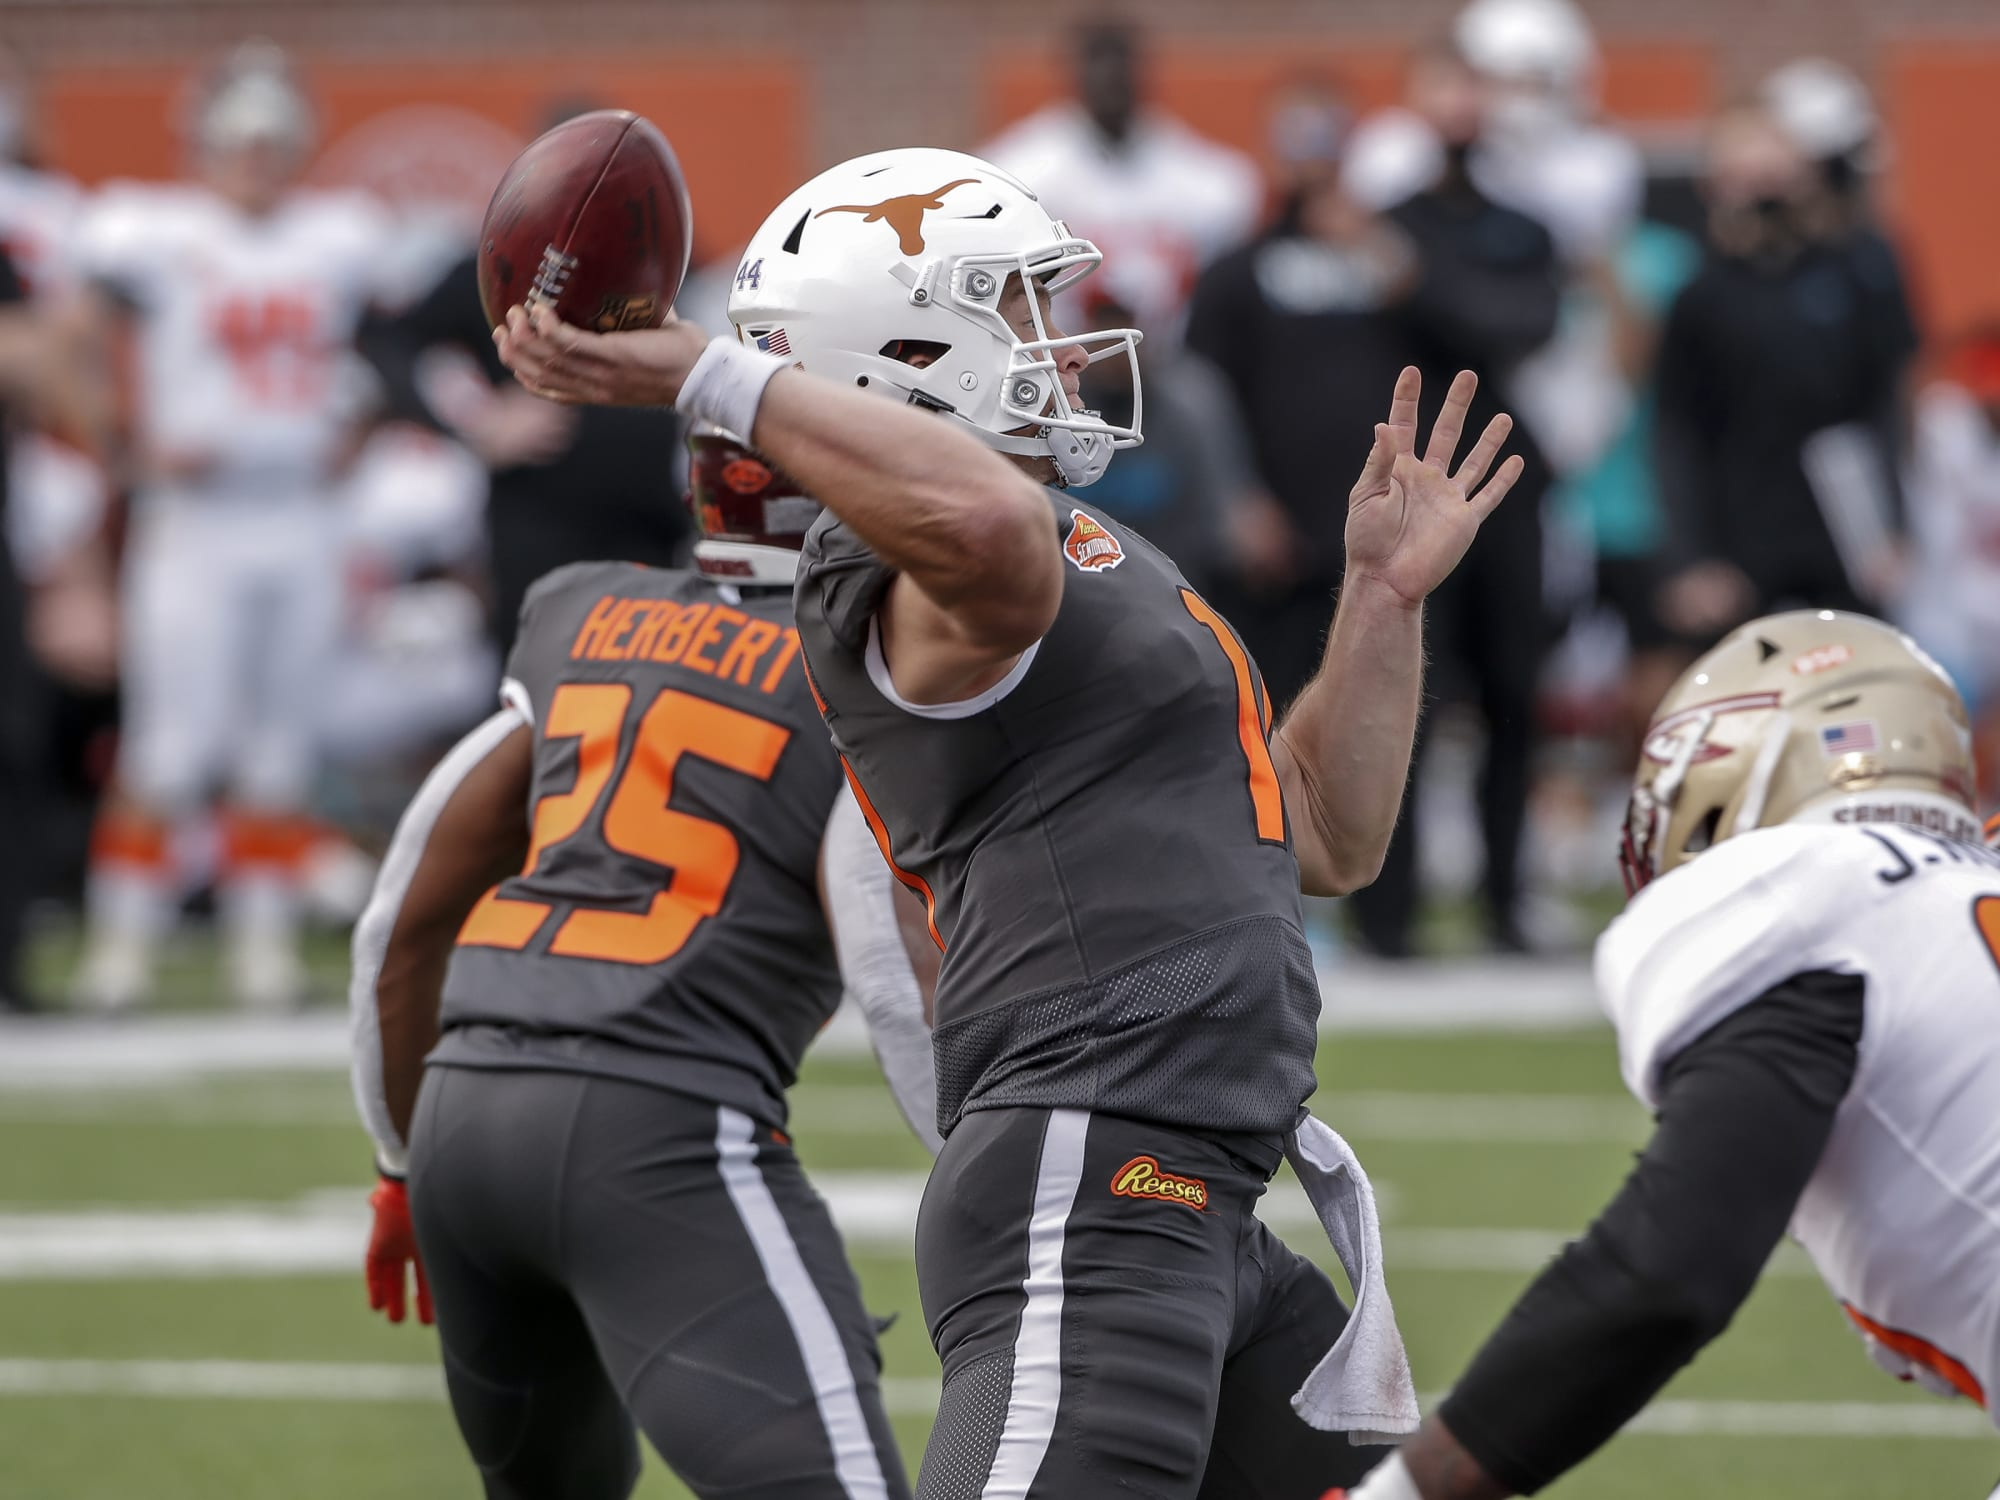 Texas Football: Colts really like Sam Ehlinger's 'poise and instincts'